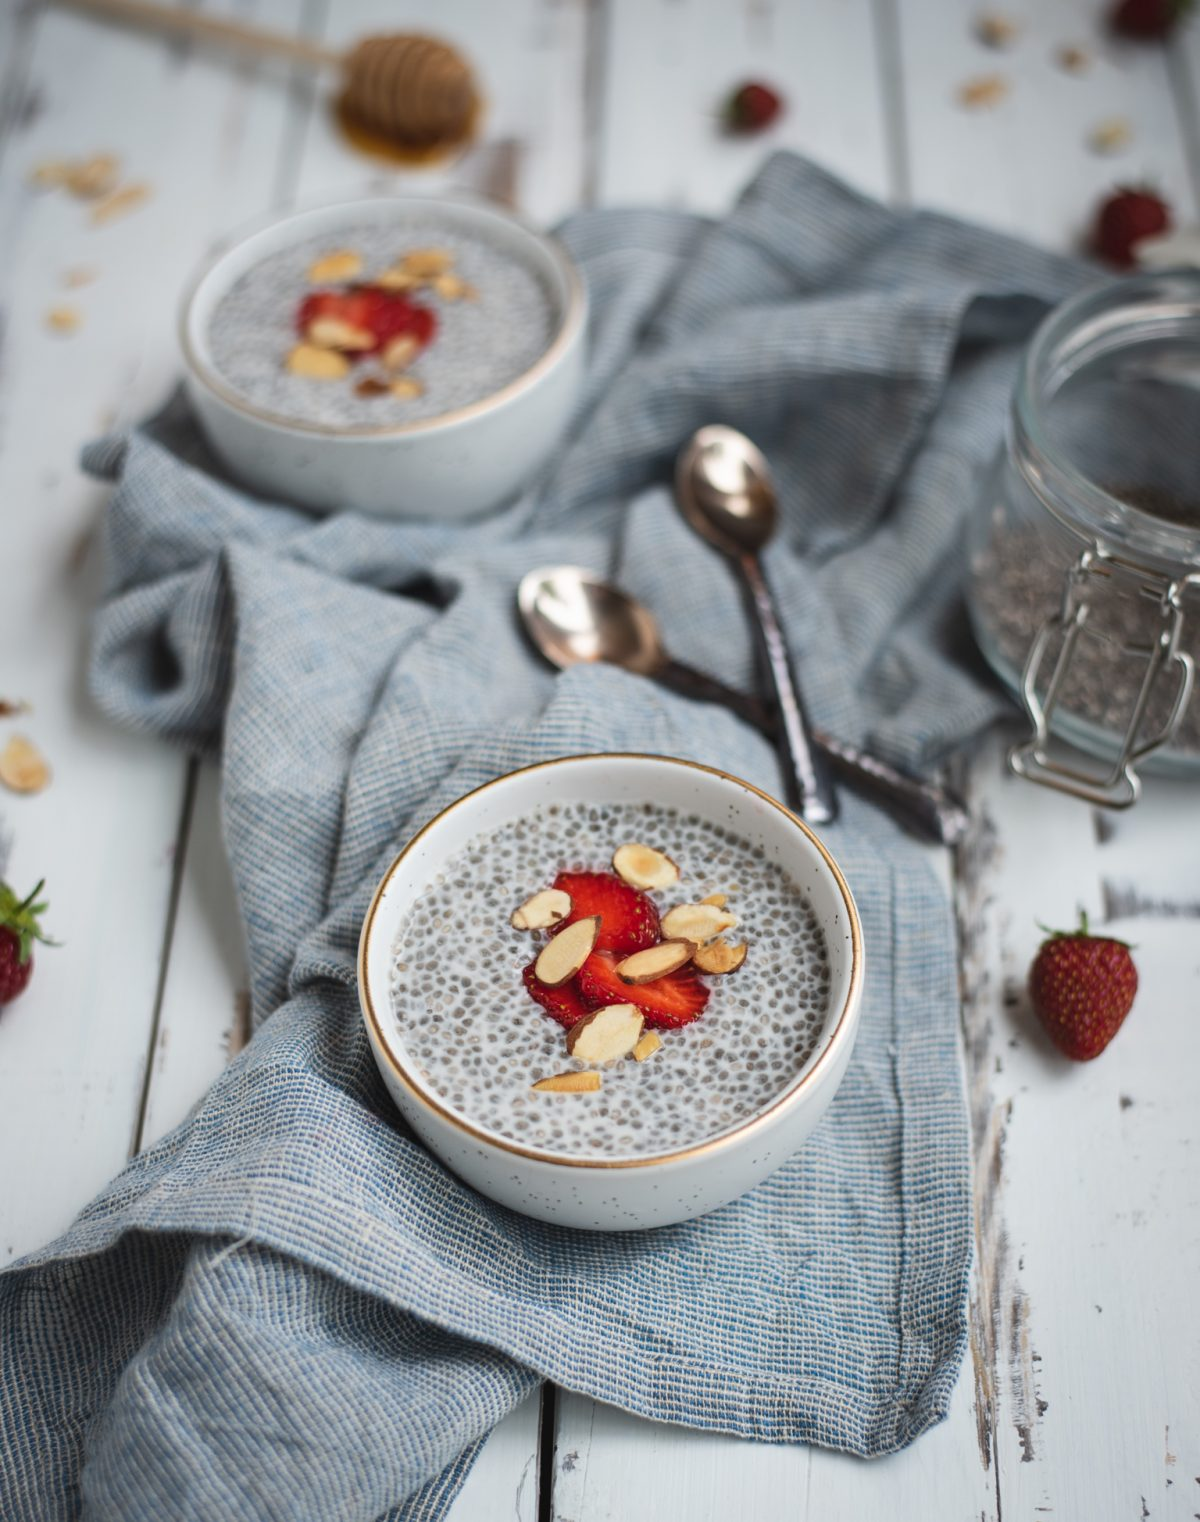 Almond chia seed pudding in two bowls